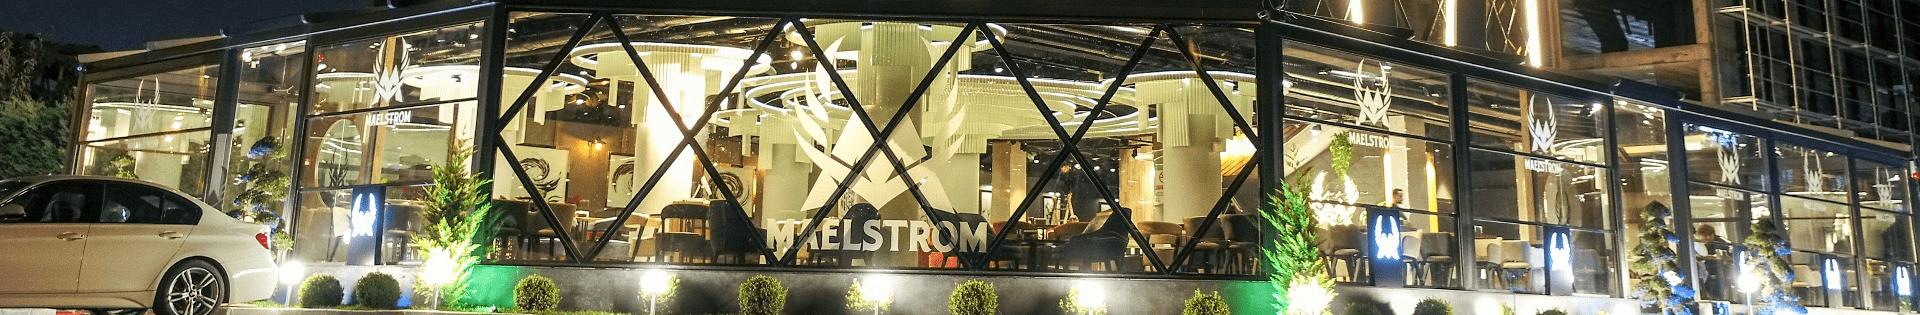 Maelstrom Cafe Restaurant